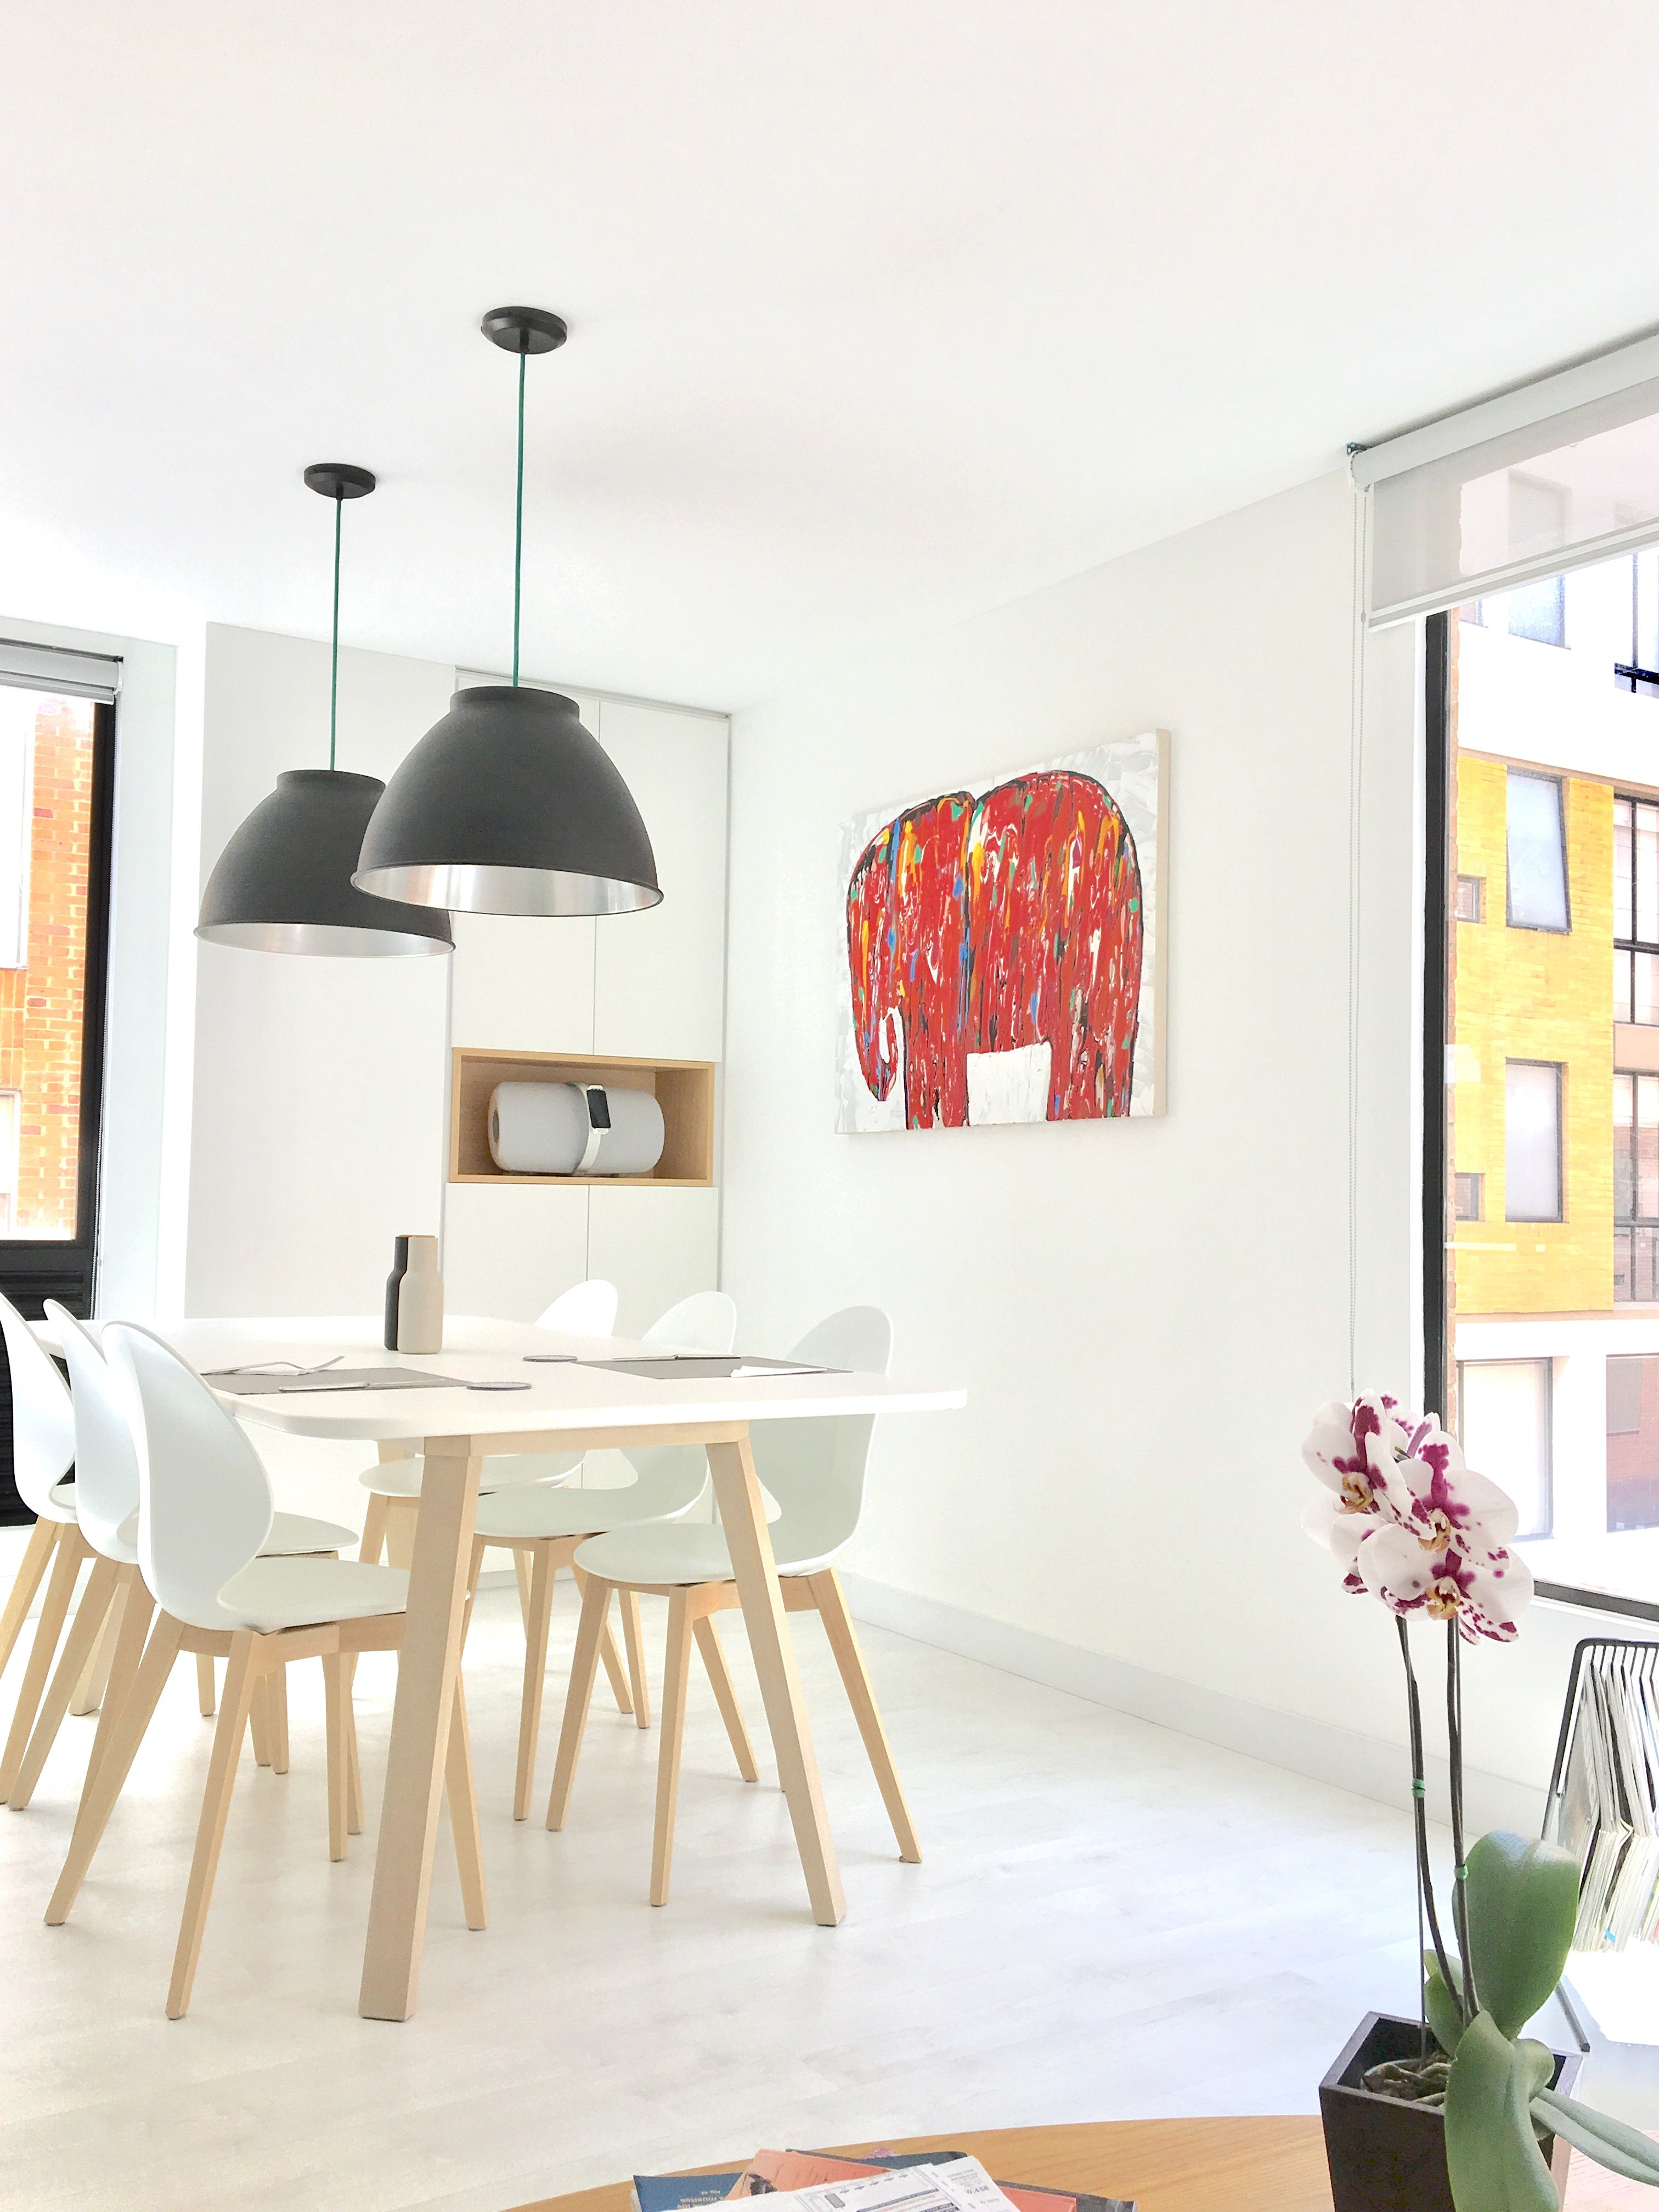 Home Decor - Dining Room - Small Places